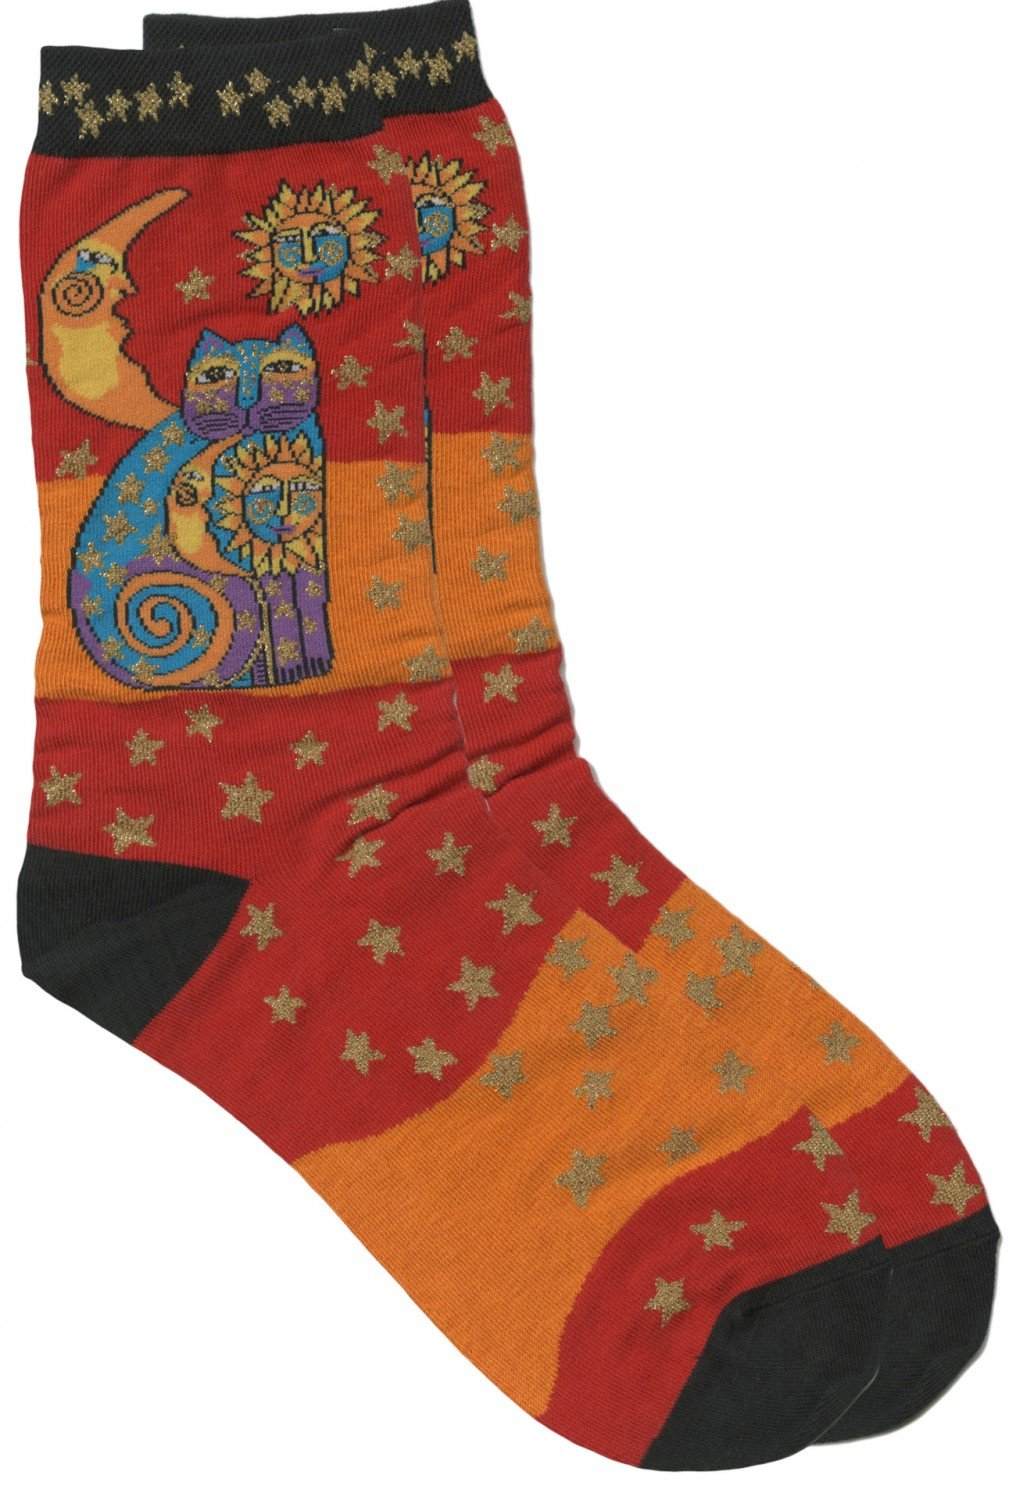 Laurel Burch Socks Celestial Cat Orange